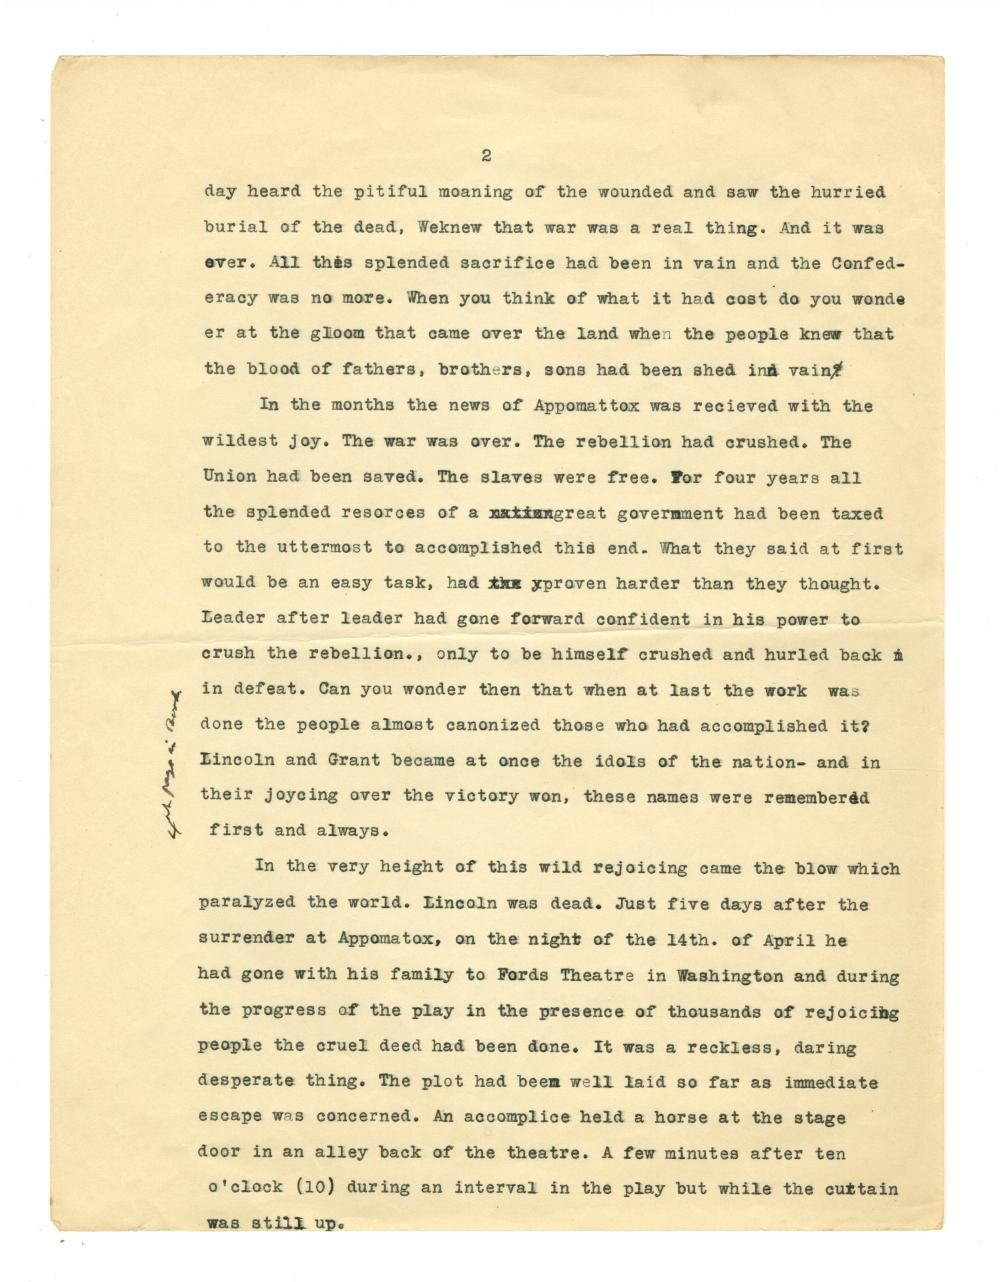 Contemporary Account of Lincoln Assassination, Ex-Nicholson Collection